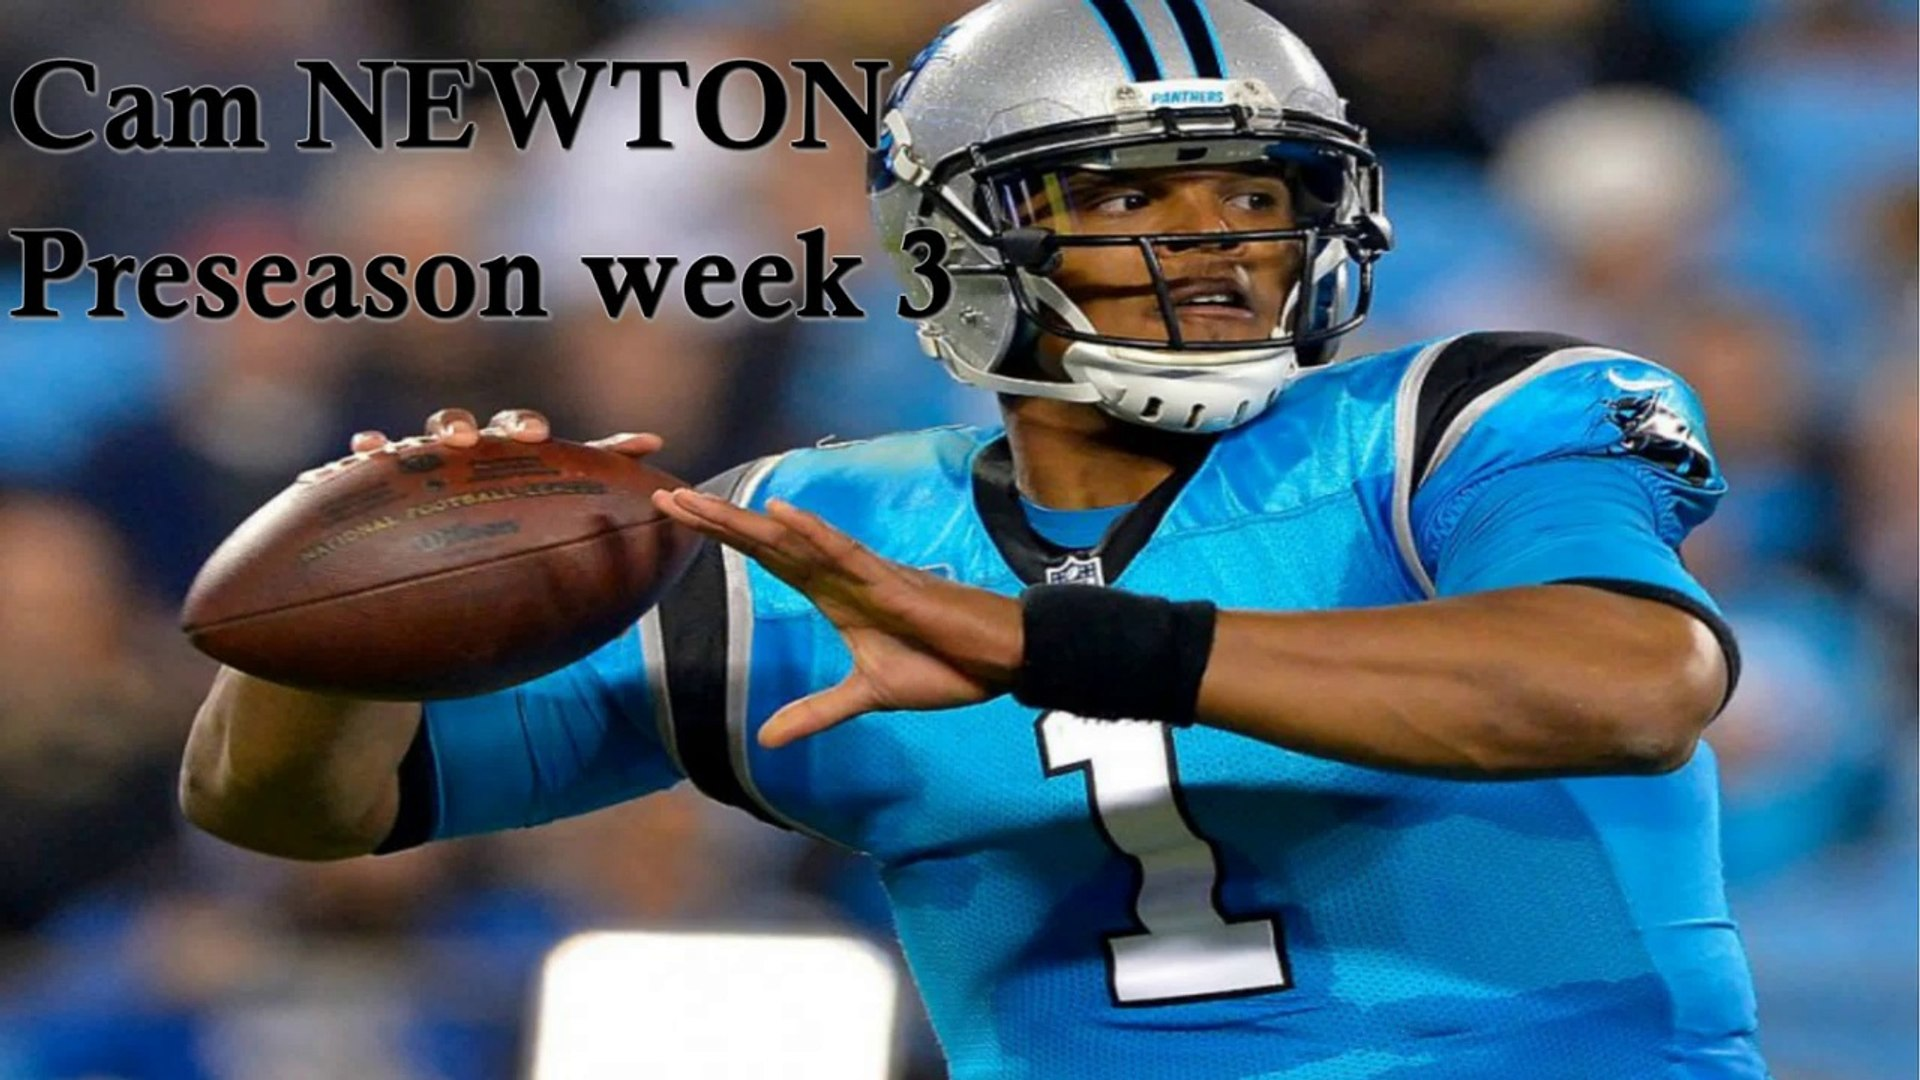 Cam NEWTON vs PATRIOT Preseason Week 3 - Highlights NFL 2018